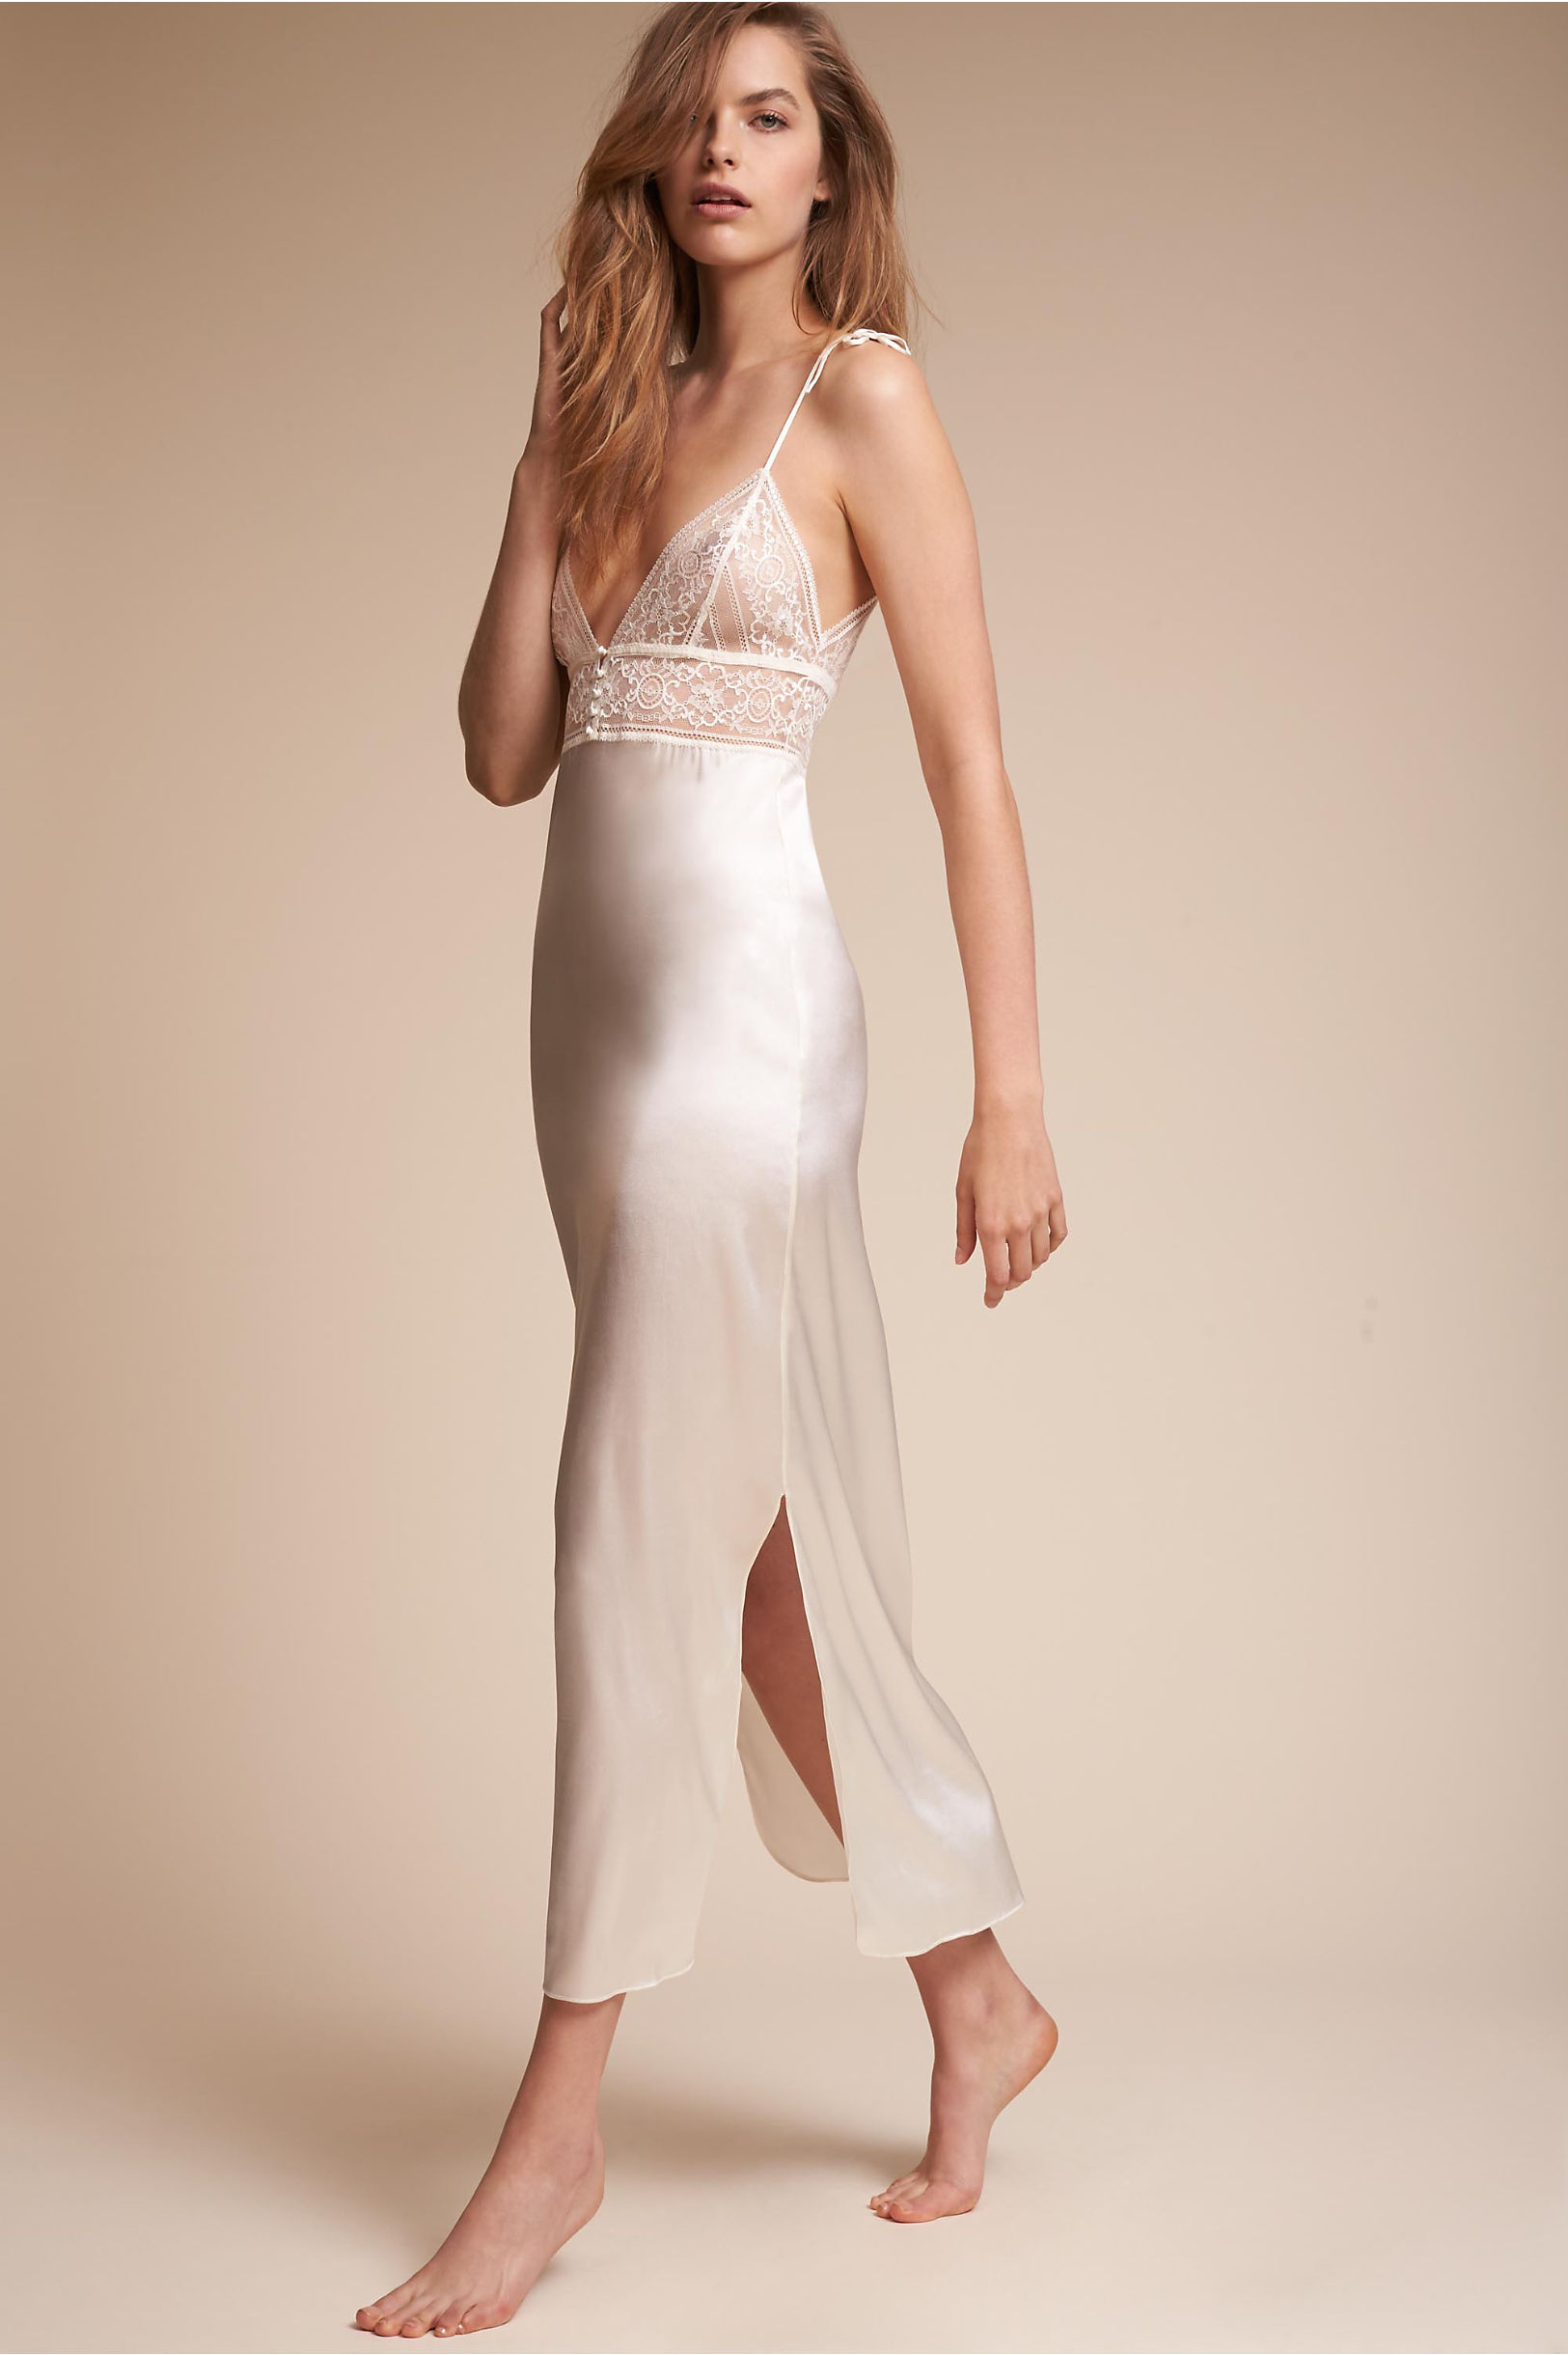 Aurlane Chemise in Sale | BHLDN